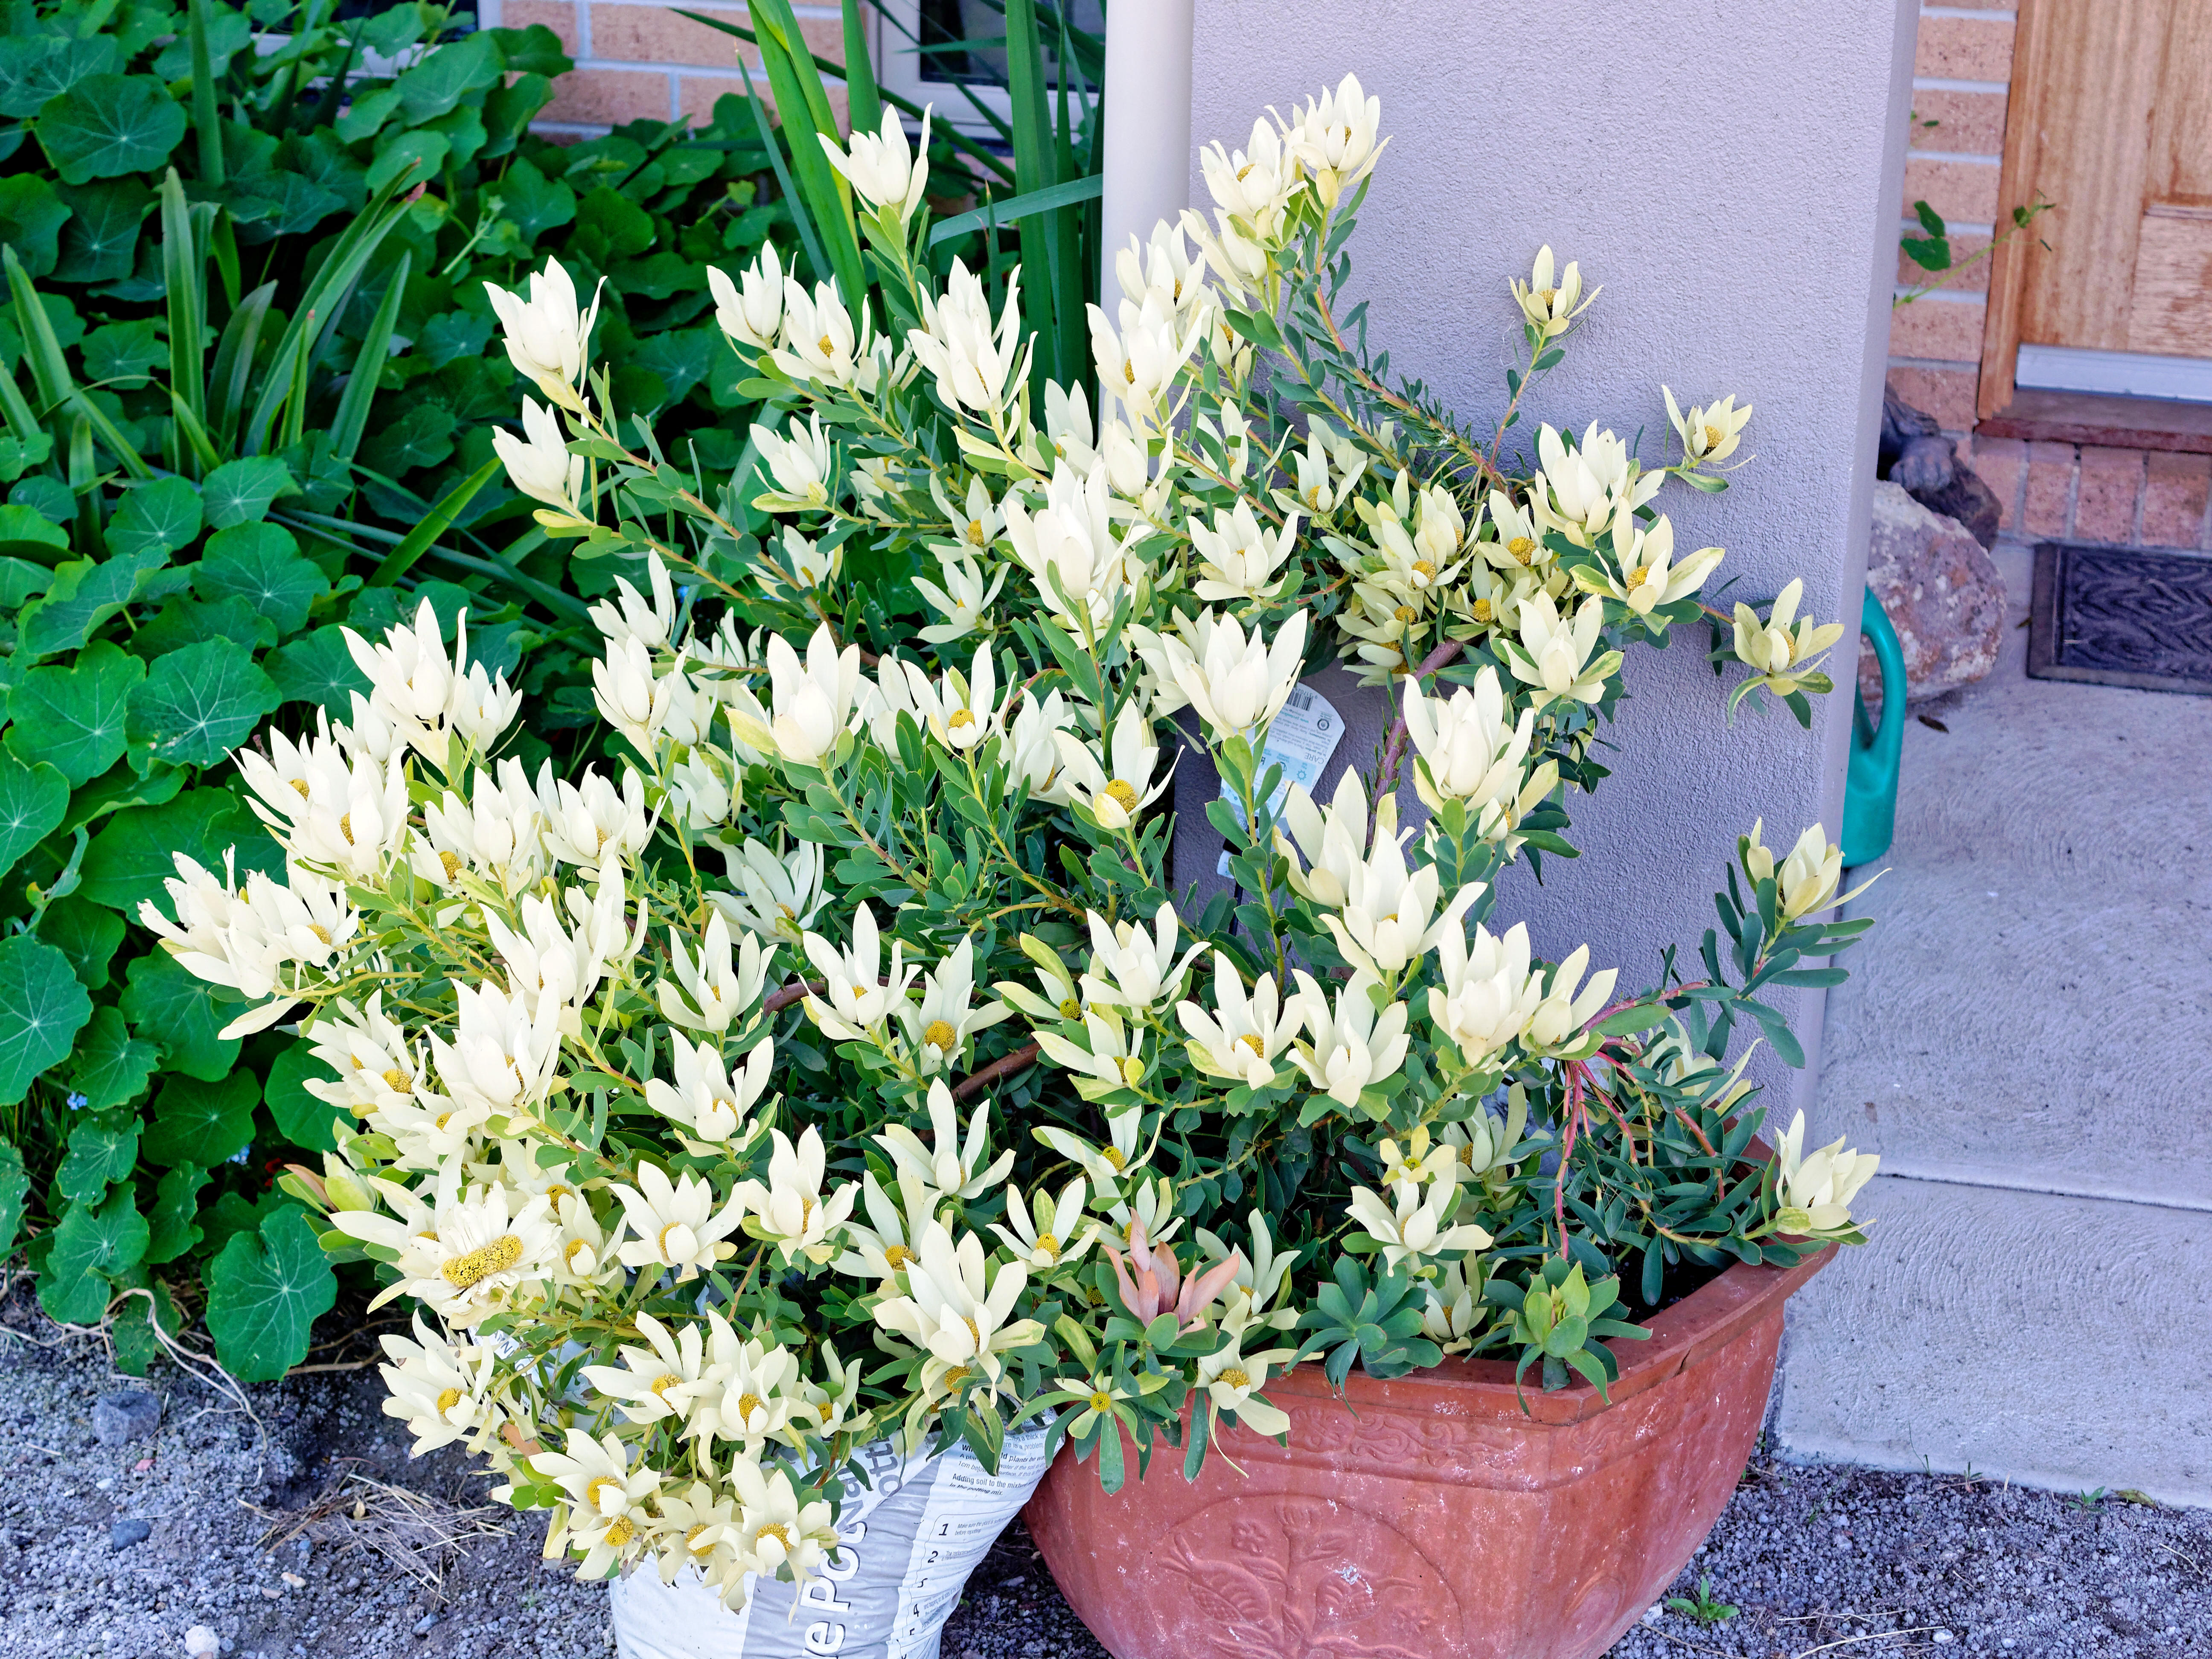 This should be Leucadendron-1.jpeg.  Is it missing?